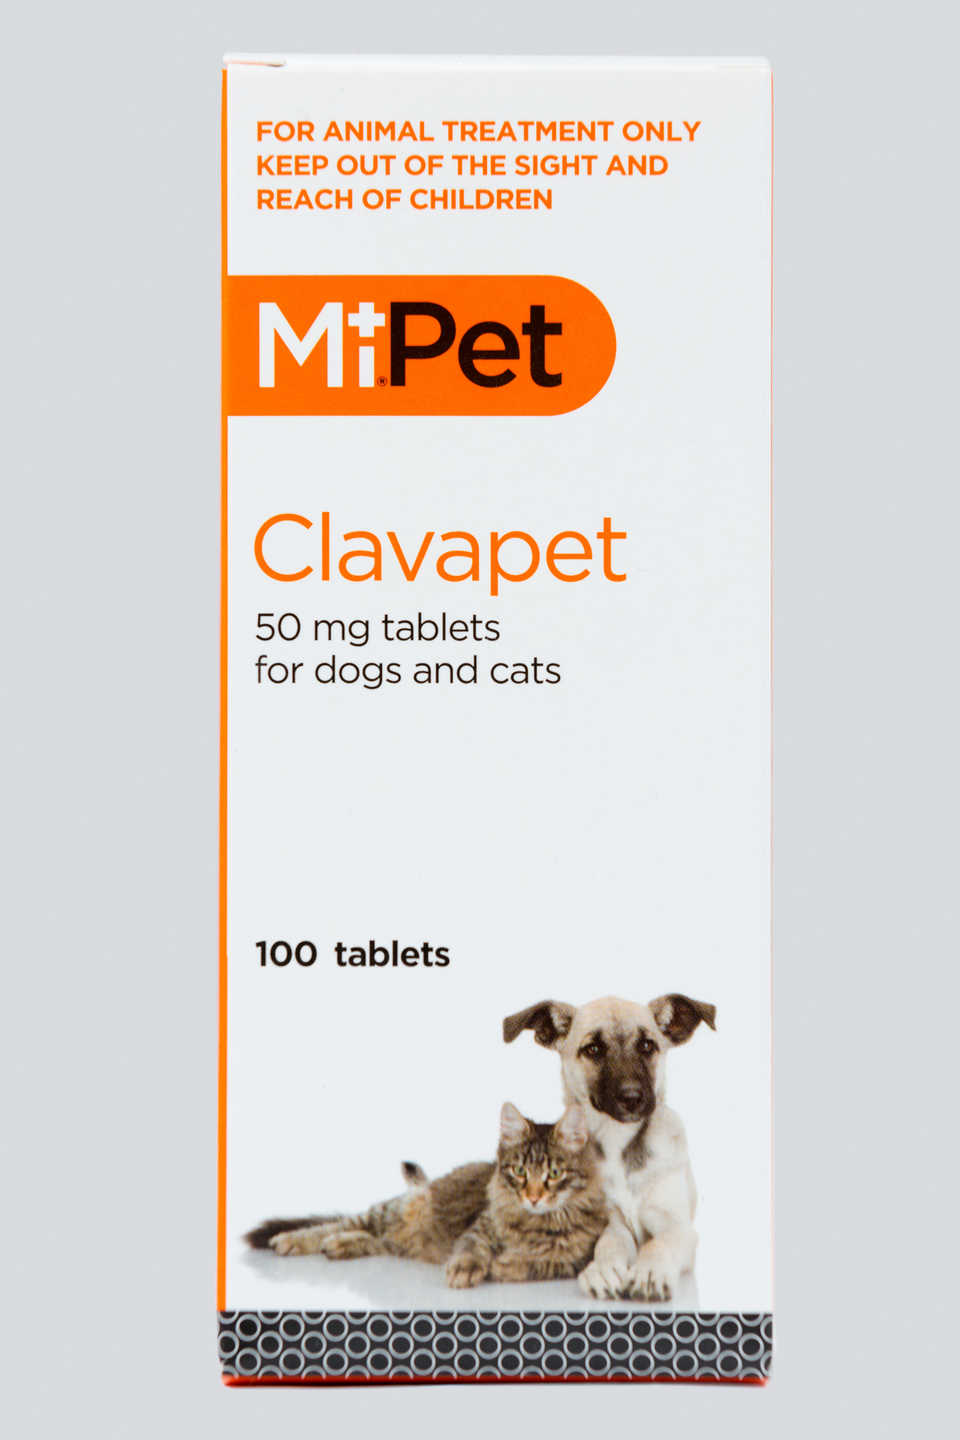 Pages 2016 02 09   clavapet 50mg x100 for dogs and cats   www.josephcaseyphotography.com